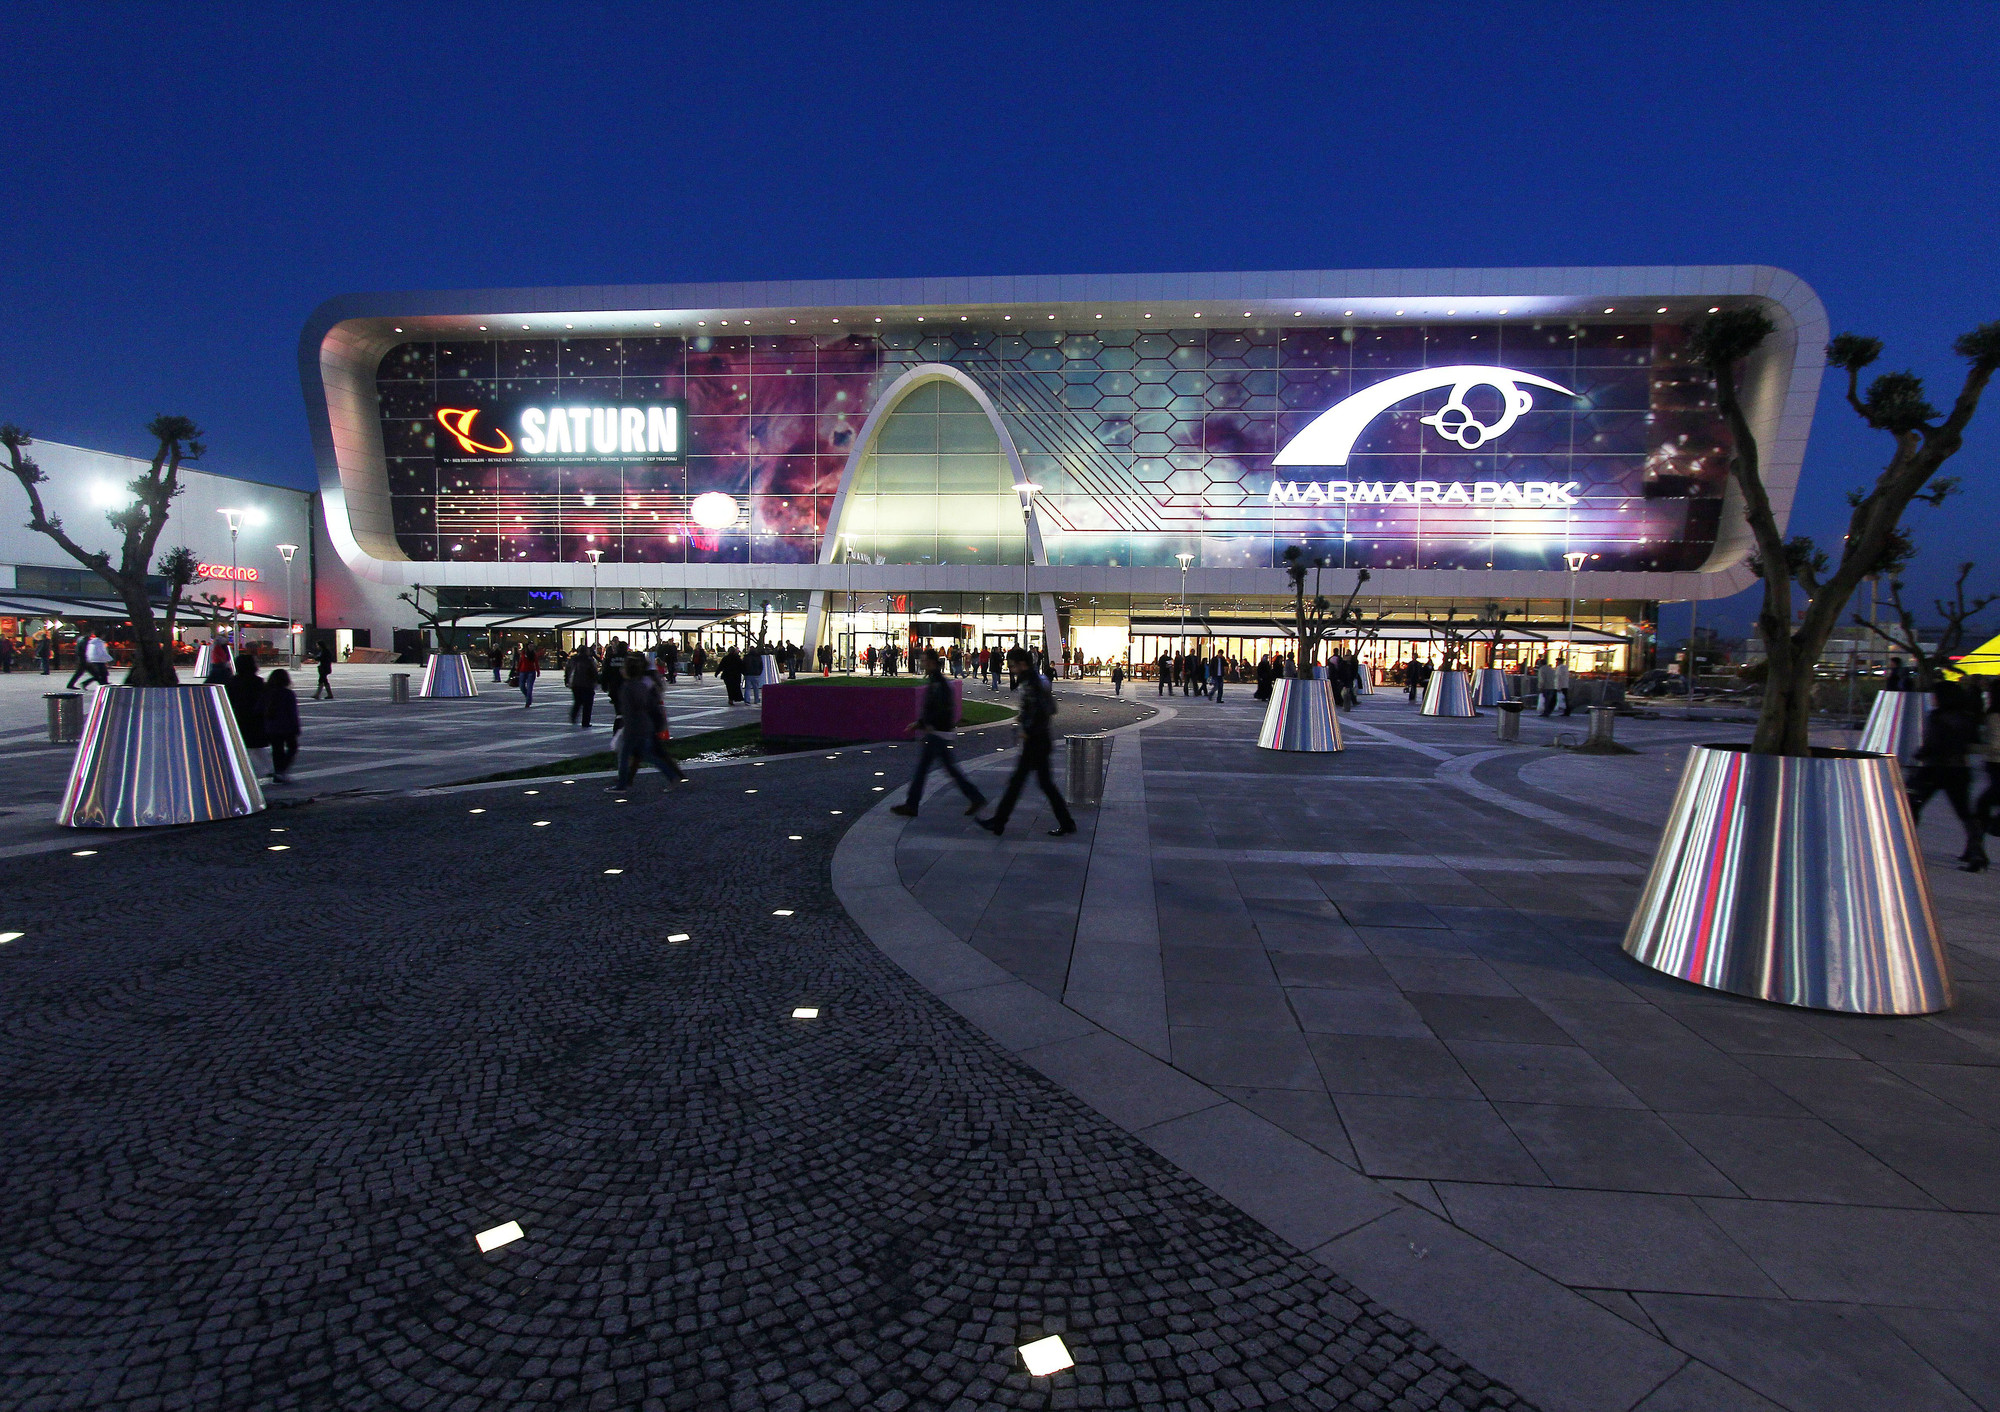 MIPIM Awards Winners 2013, Best Shopping Center Award: Marmara Park by ECE Projektmanagement